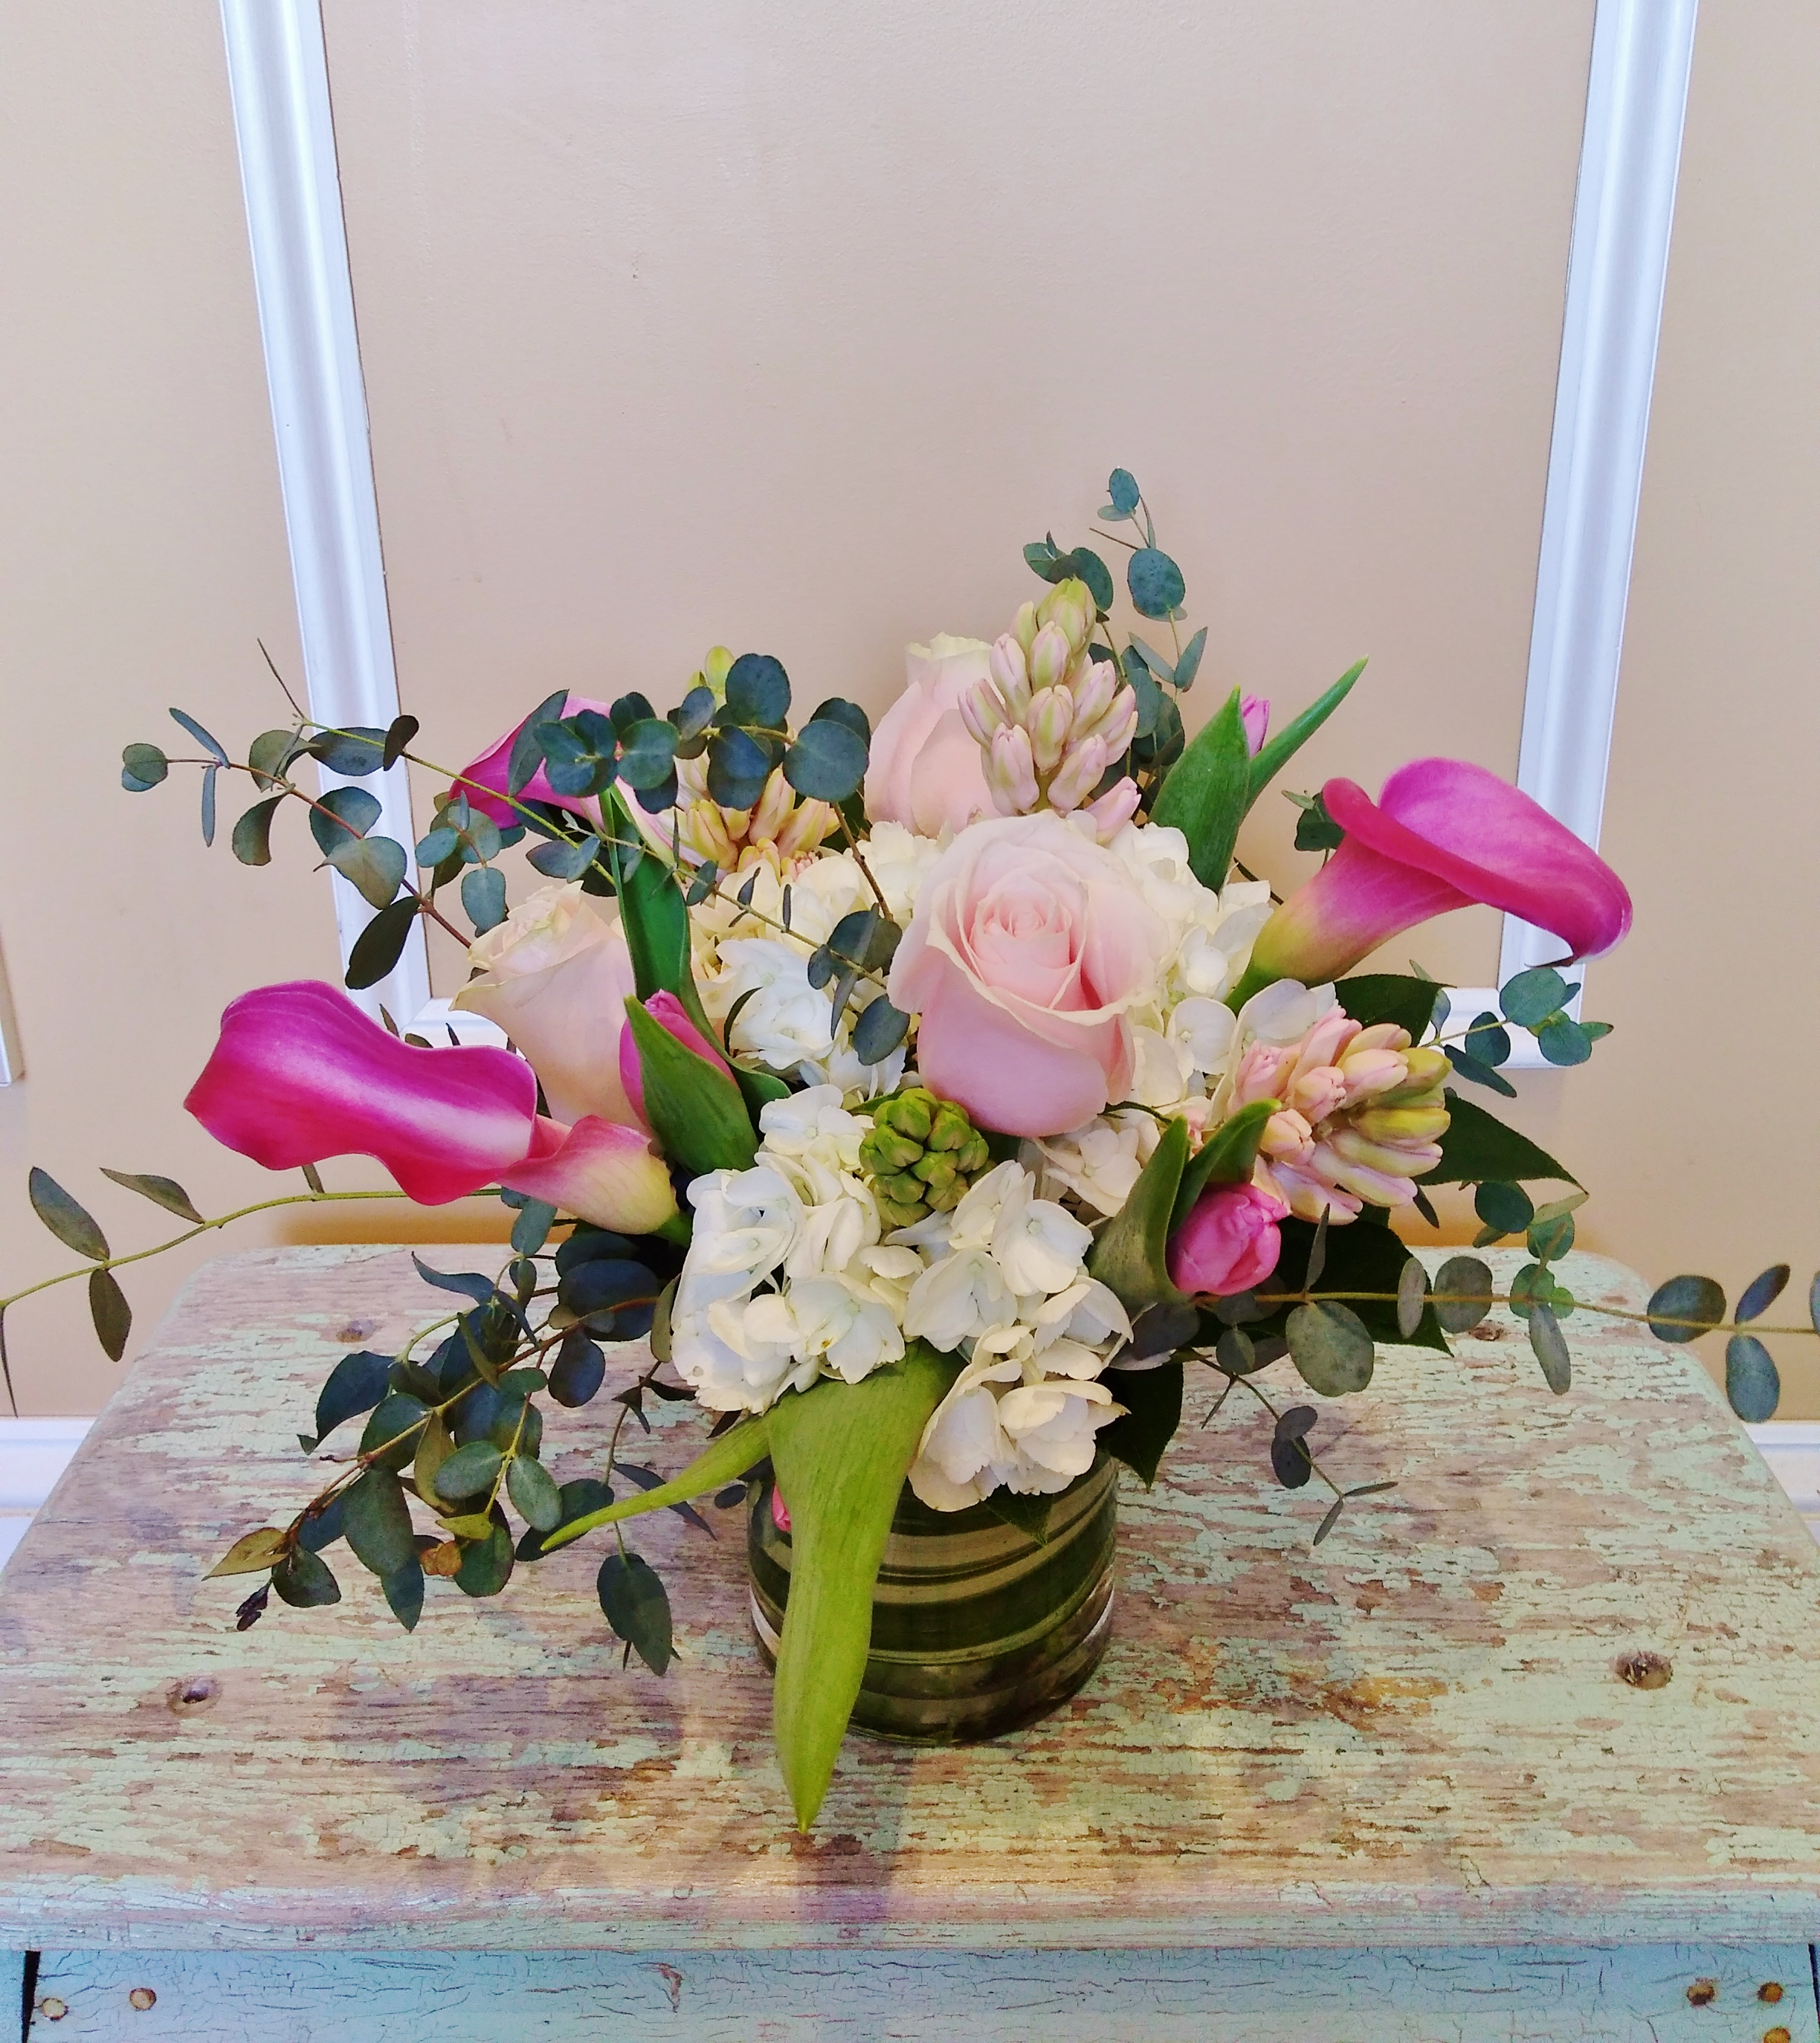 A3 $65-$85 Cluster-style arrangement. $65 as shown.